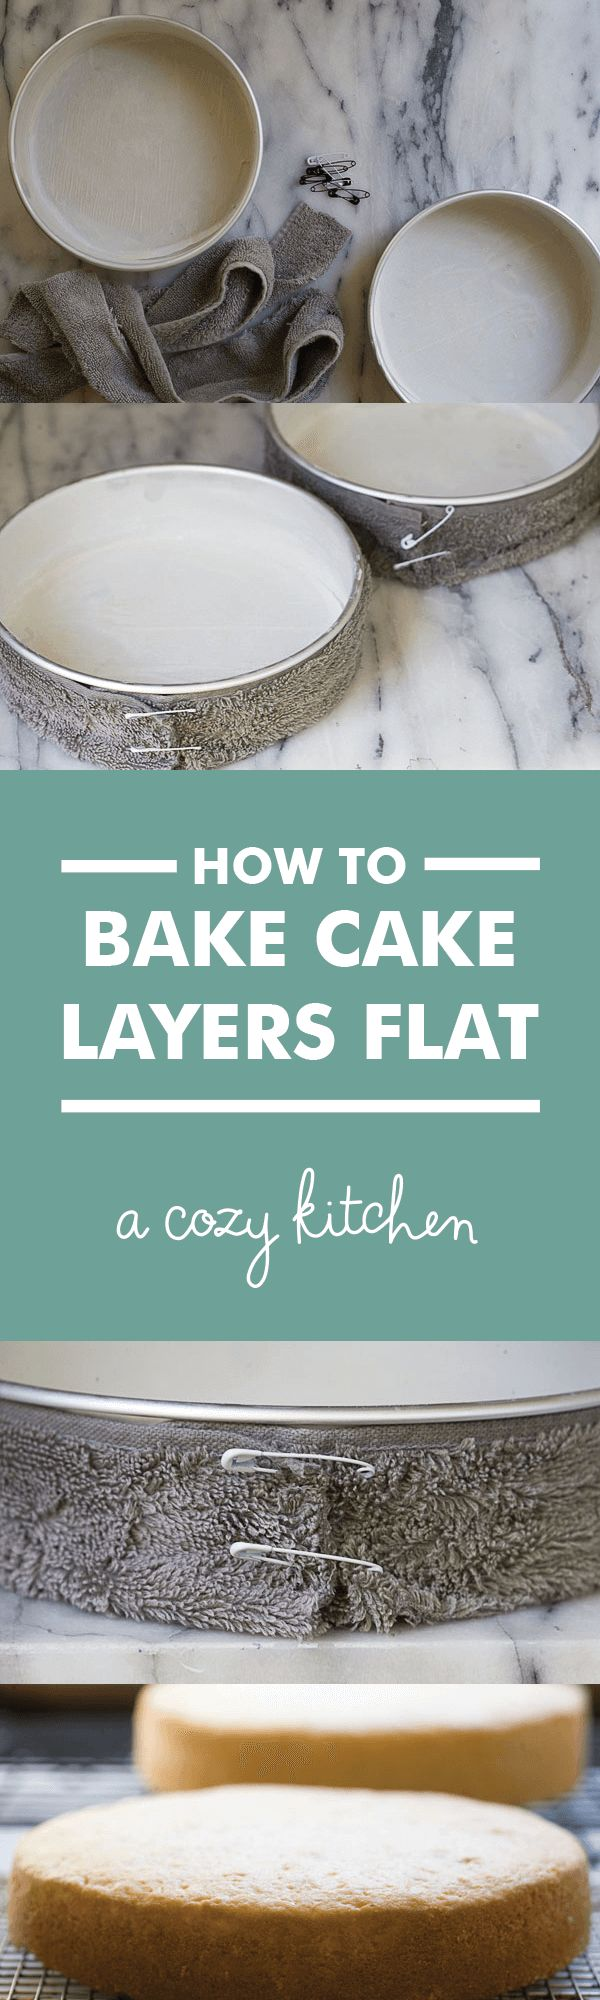 I'm not sure there will ever come a day when baking isn't magical to me. I still get giddy when I turn on the oven light, peek through the glass to see biscuits doubling in size. Or when a waif of baking banana bread skips through the house and under my little nose. Baking is... #baking #cake #diy